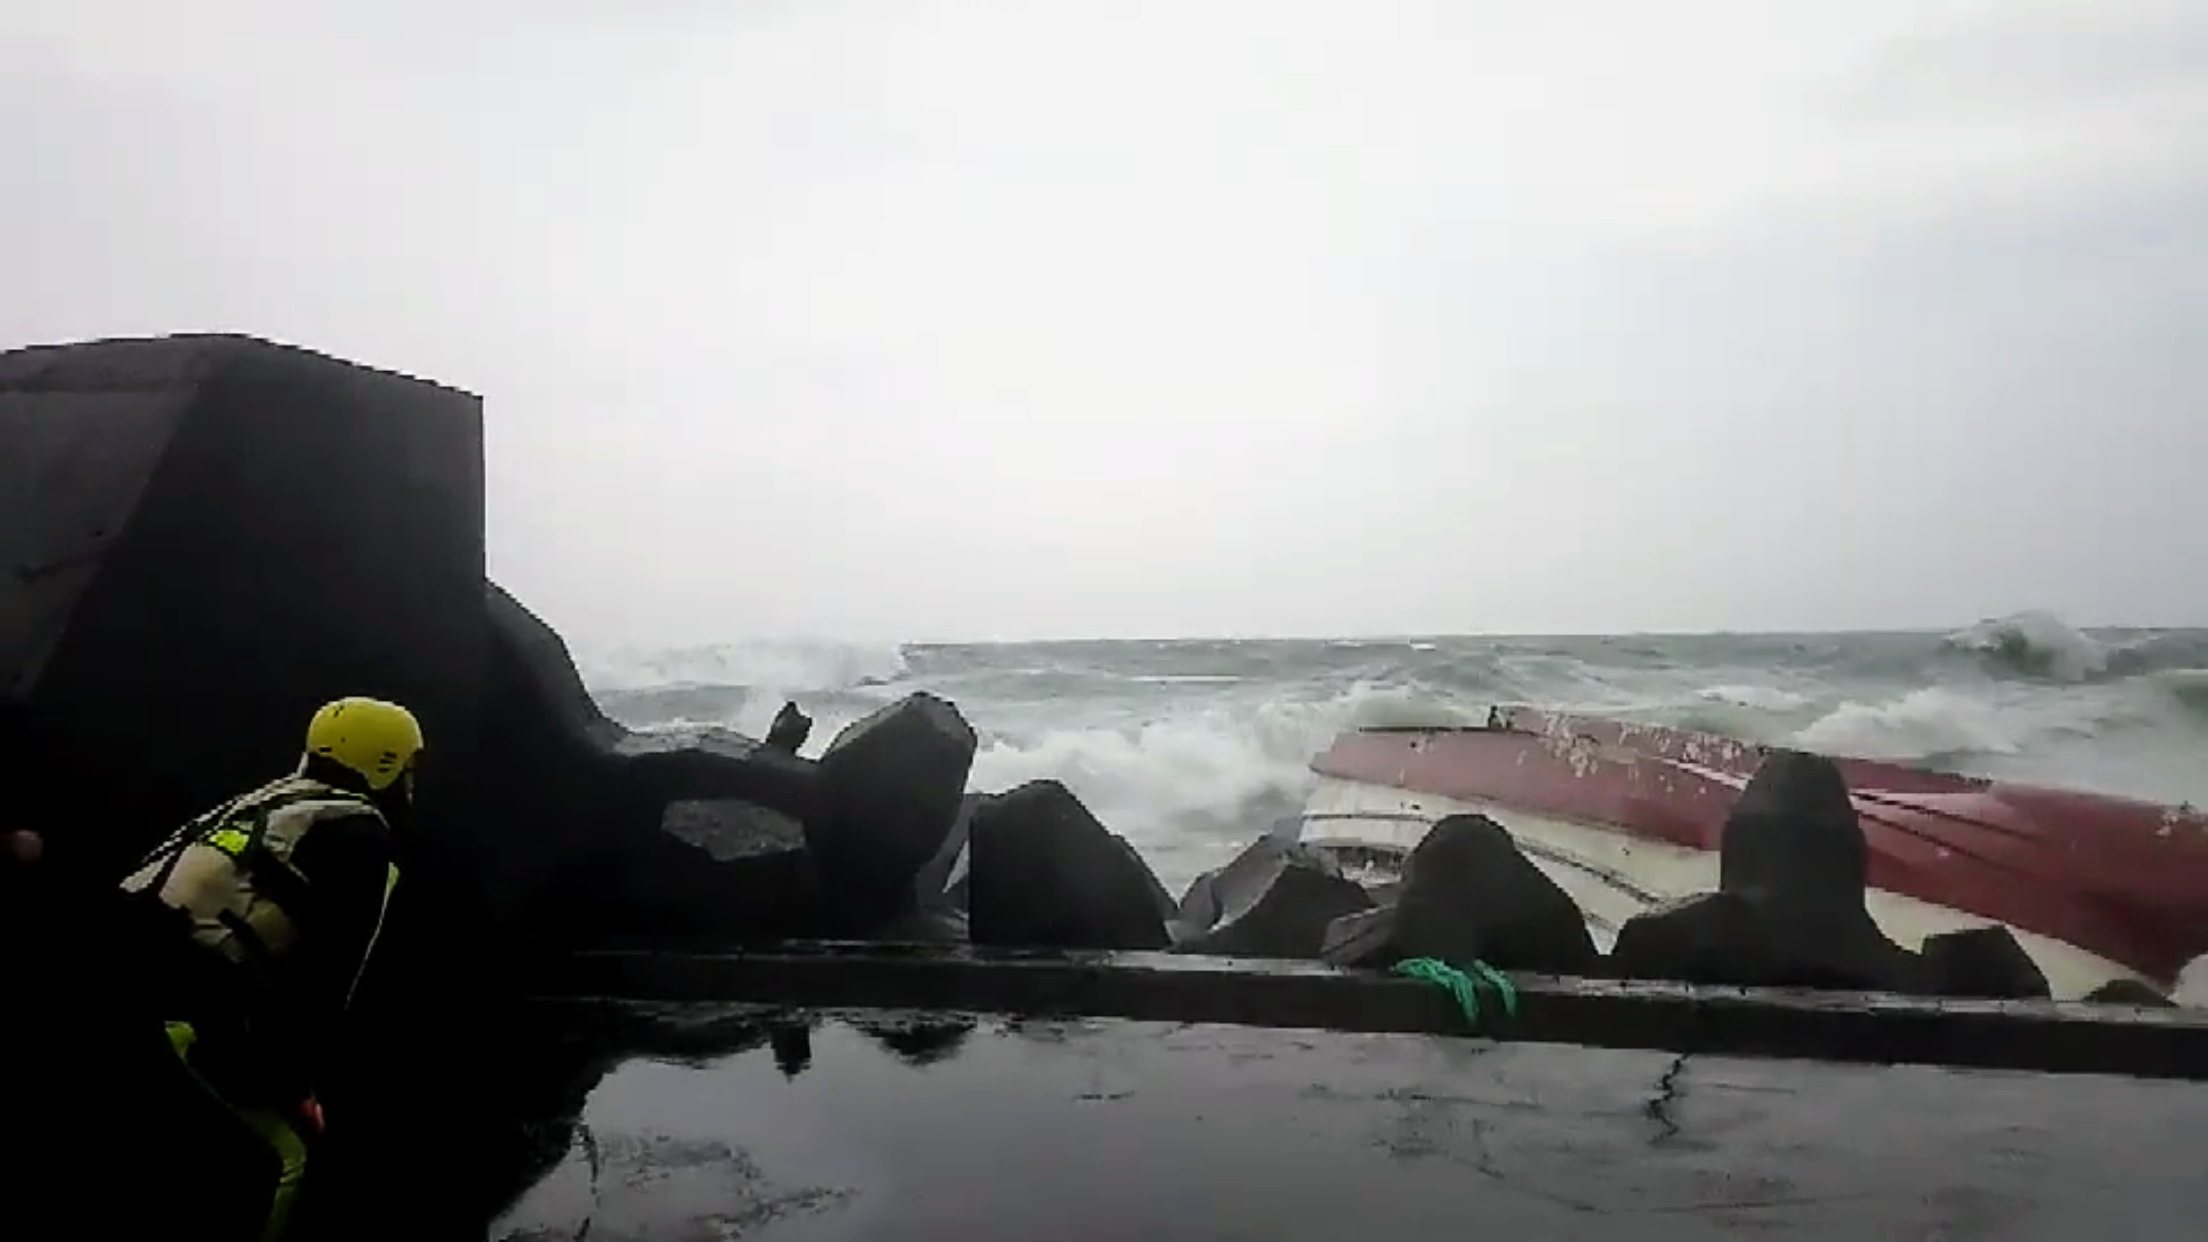 Vessel overturns outside of Ruifang.